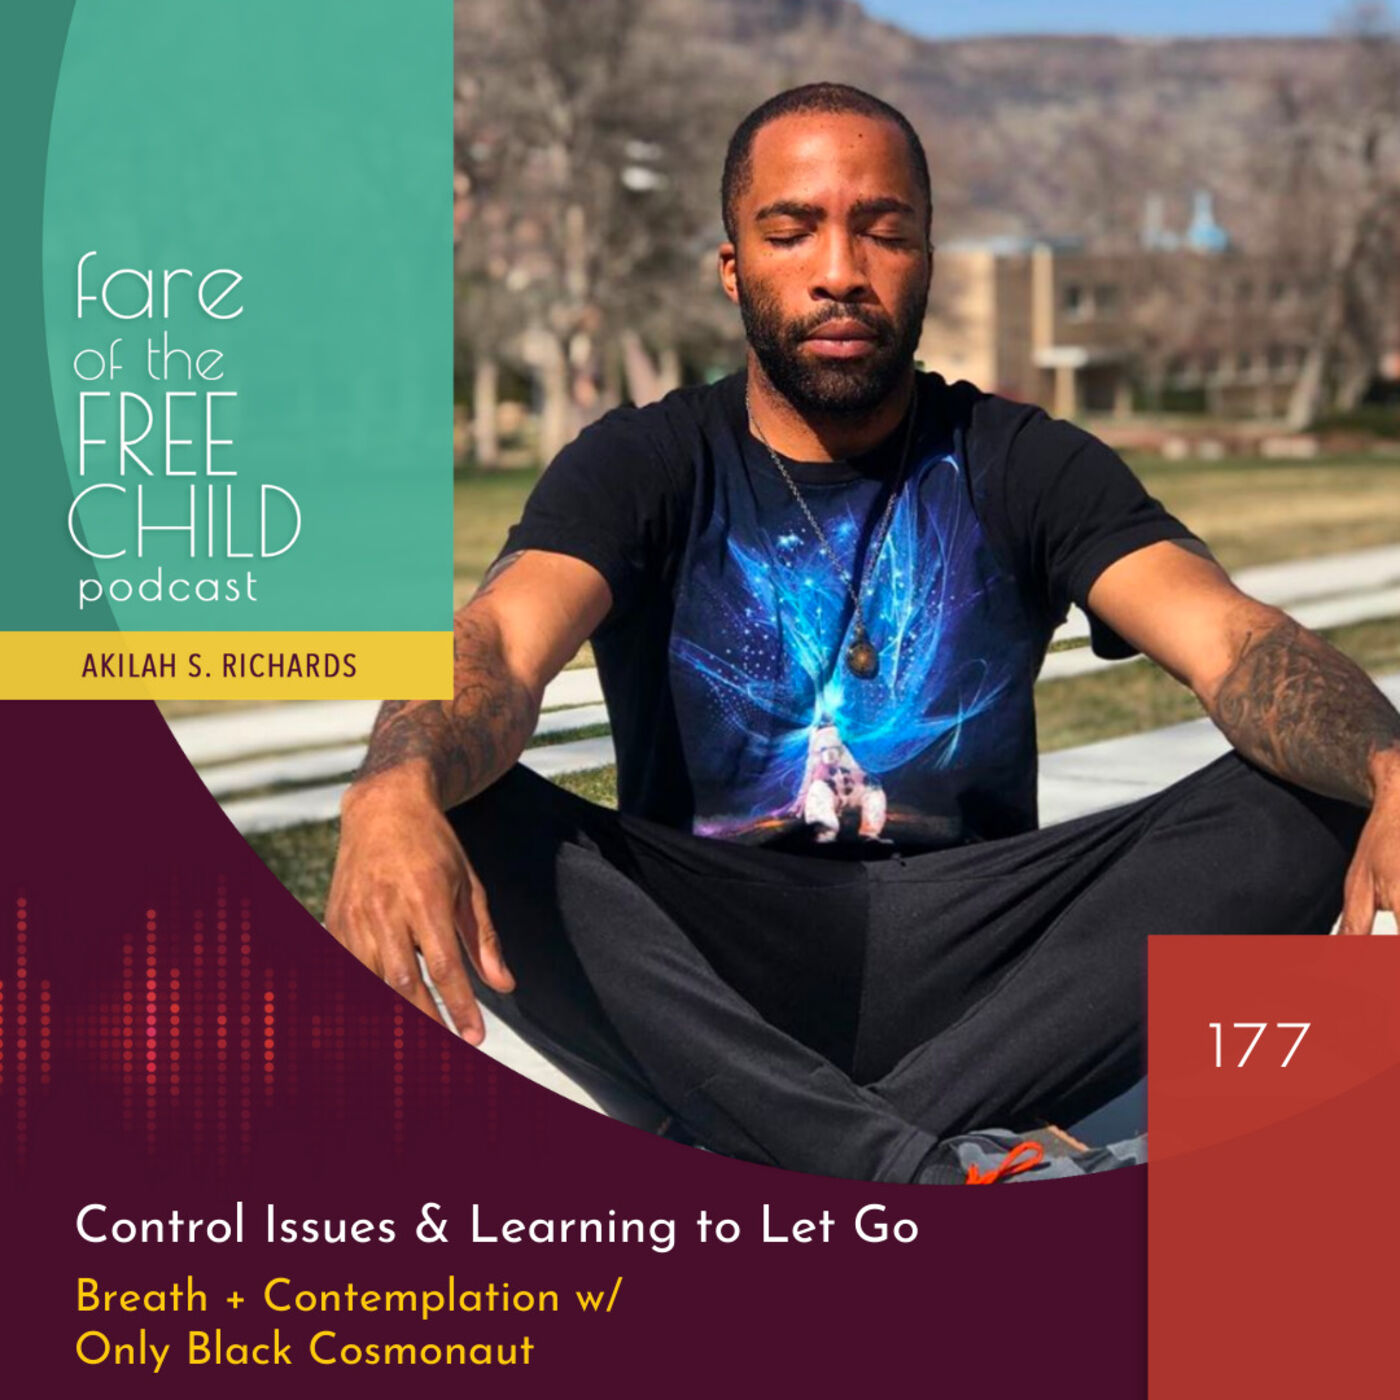 Ep 177: Control Issues & Learning to Let Go